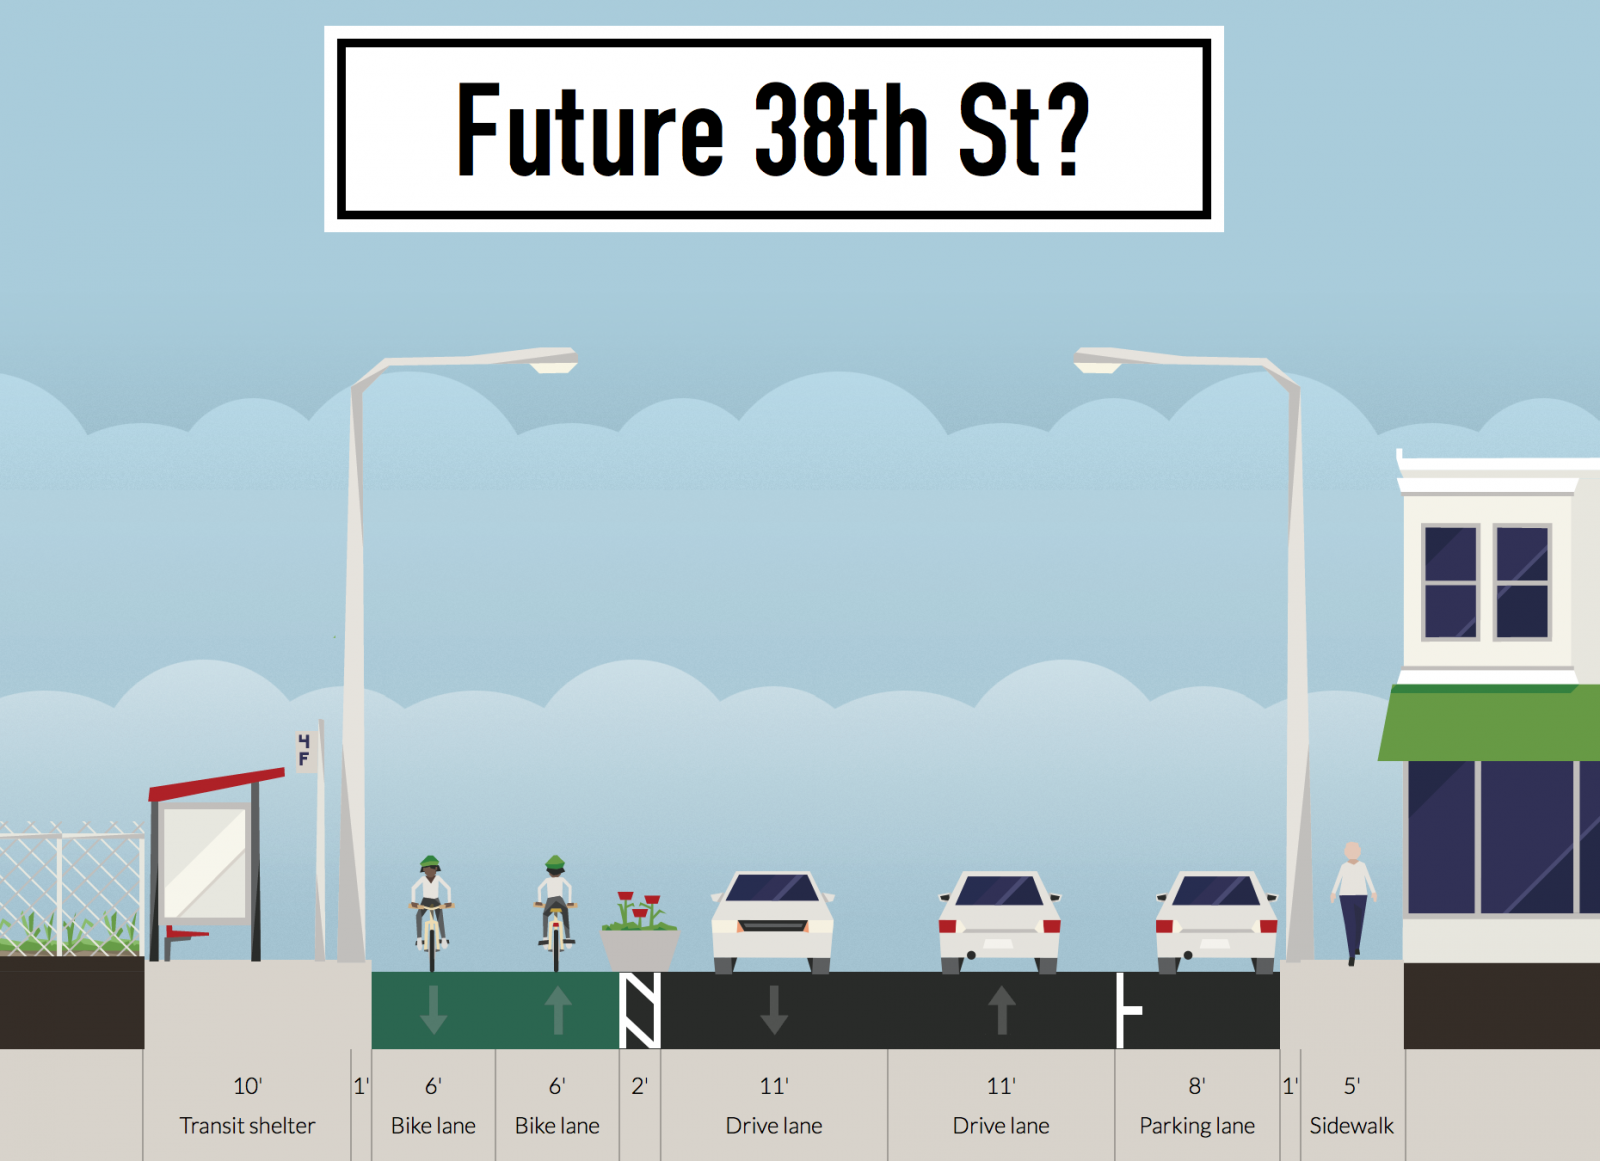 E38thSt_(5).png